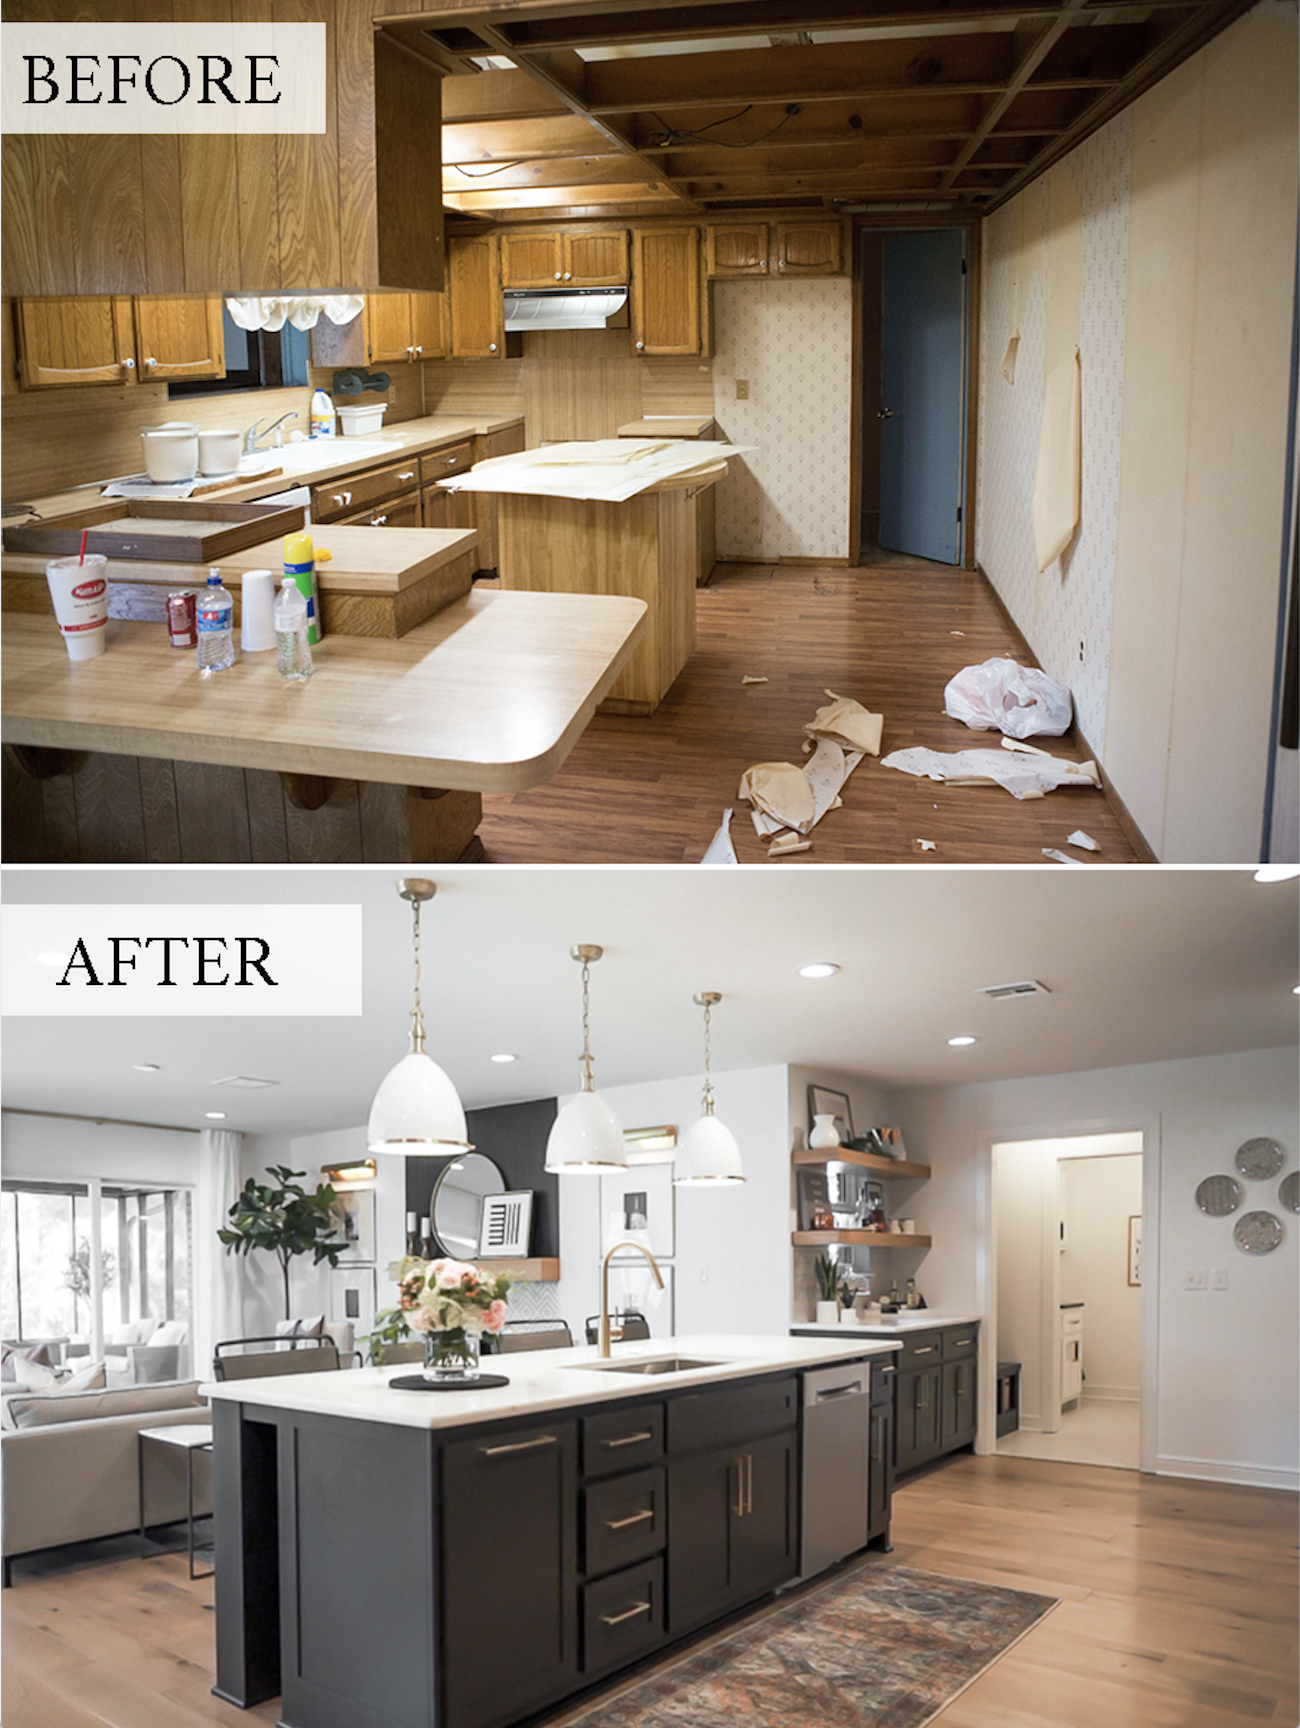 Cc And Mike Modern Navy Cedar Ranch Style Remodel